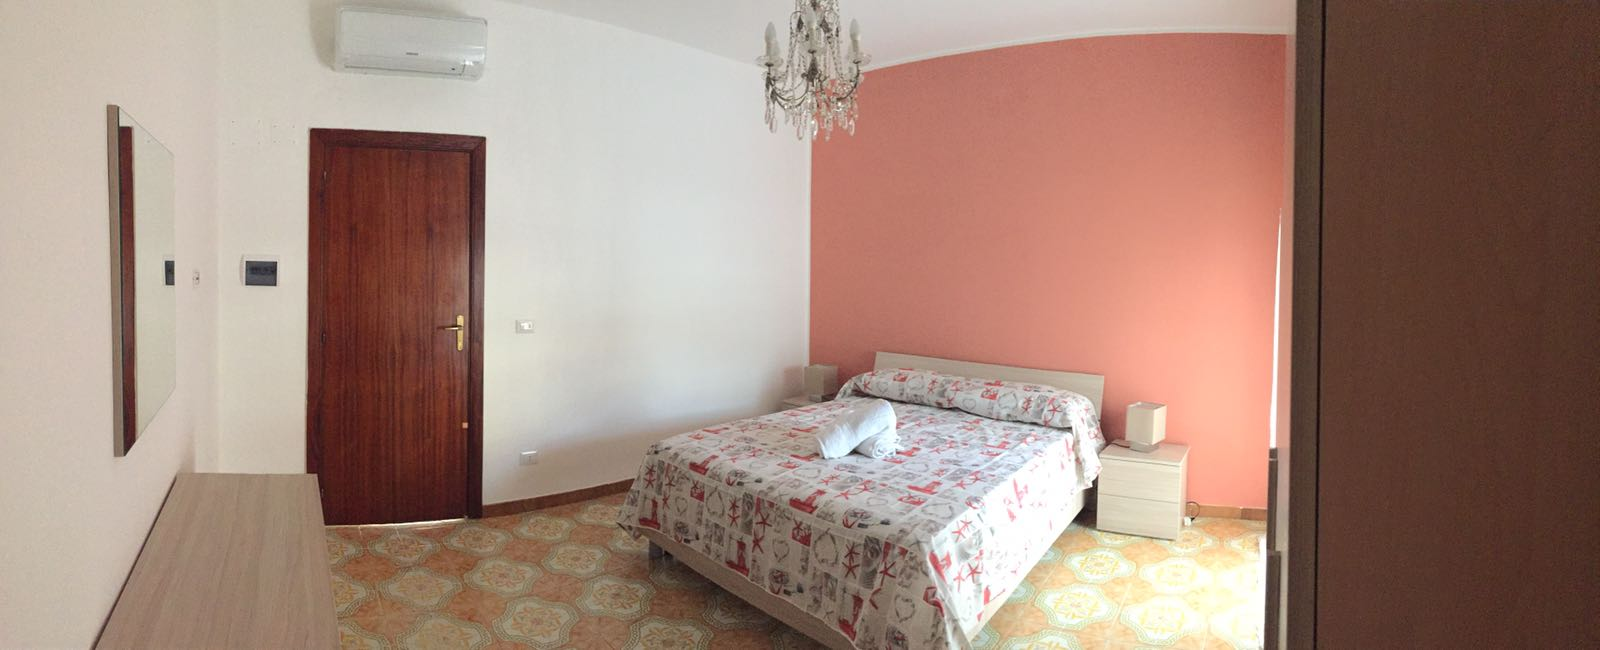 Camera doppia Family Room b&b a diamante